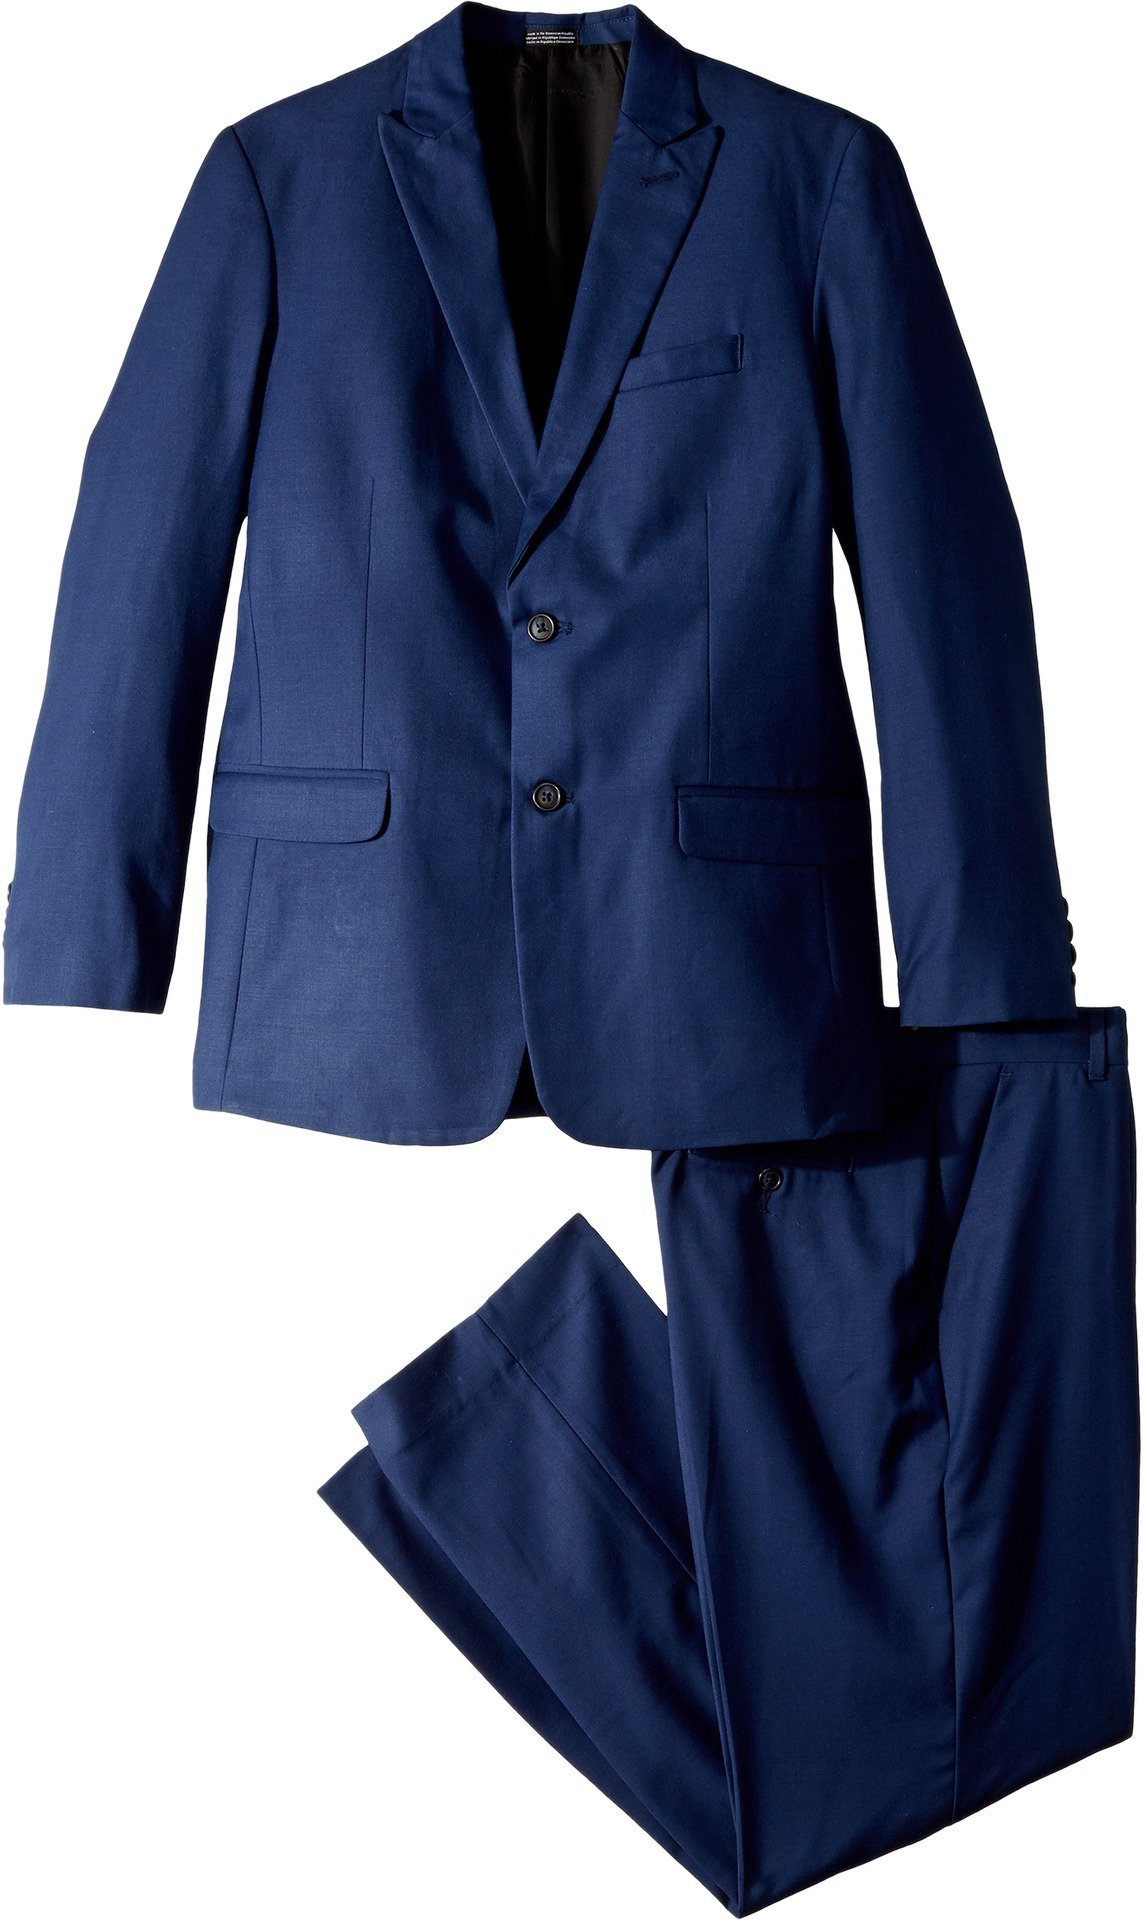 Calvin Klein Husky Boys' Two Piece Infinite Blue Suit, Bright Blue, 18H by Calvin Klein